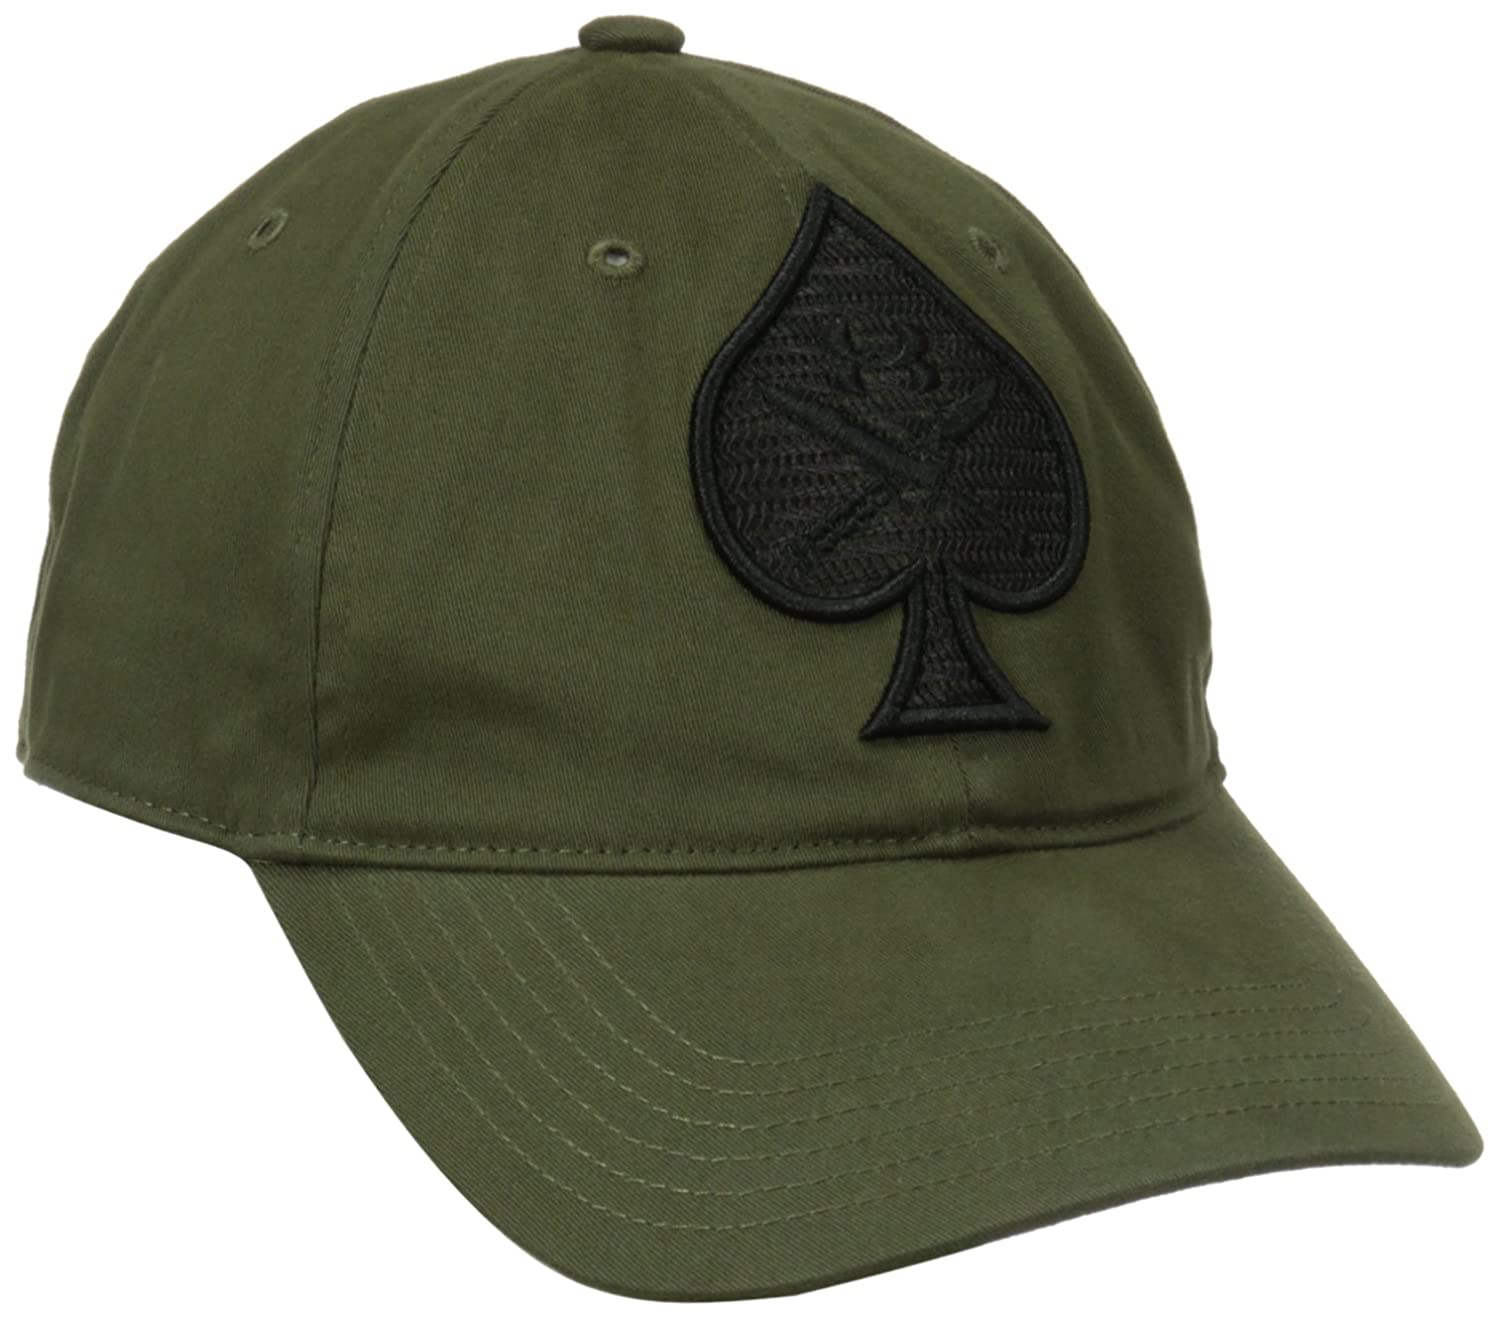 Under Armour Men's Tactical Spade Cap, Marine Od Green (390)/Black, One Size Under Armour Accessories 1249169